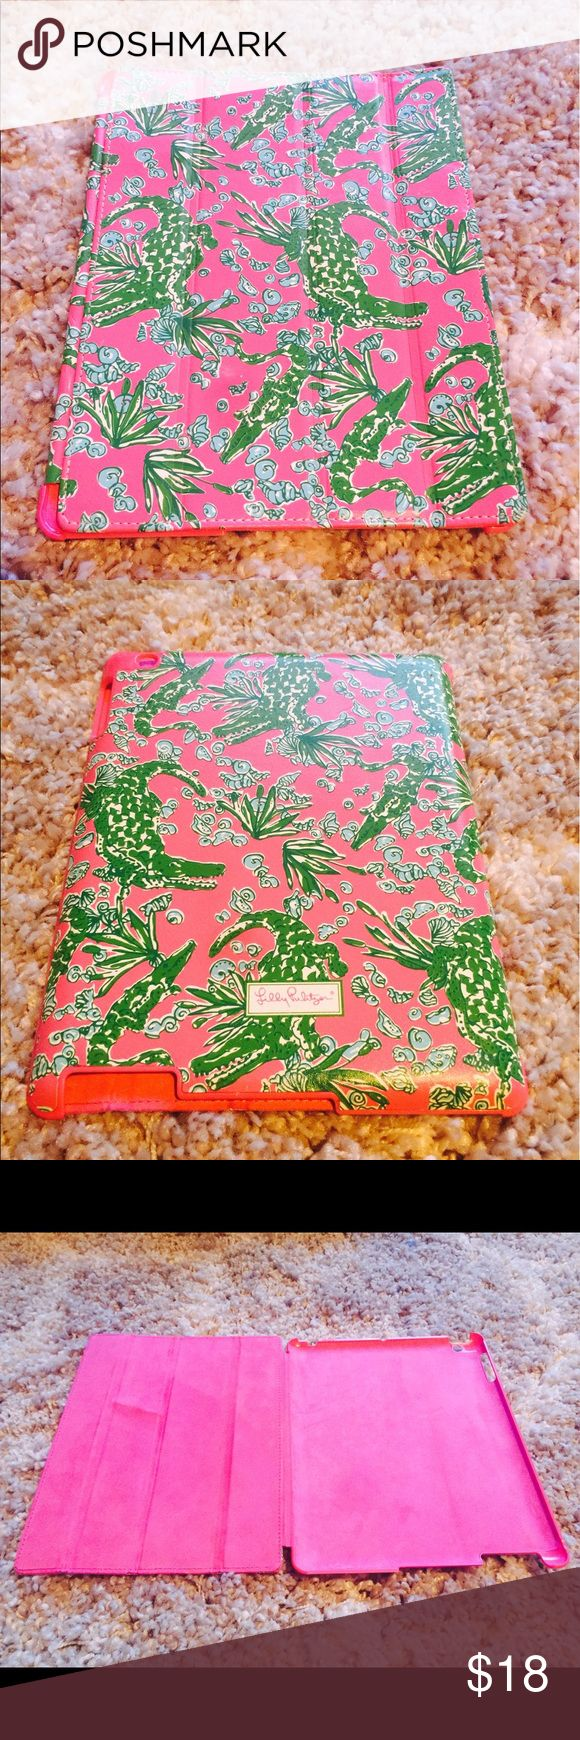 Alligator Print Lilly Pulitzer iPad Case Pink and green alligator print Lilly Pulitzer iPad Case. Small bend on inside cover panel, however should not affect protection of device (shown in photo). All orders shipped the same or next business day! Lilly Pulitzer Accessories Tablet Cases